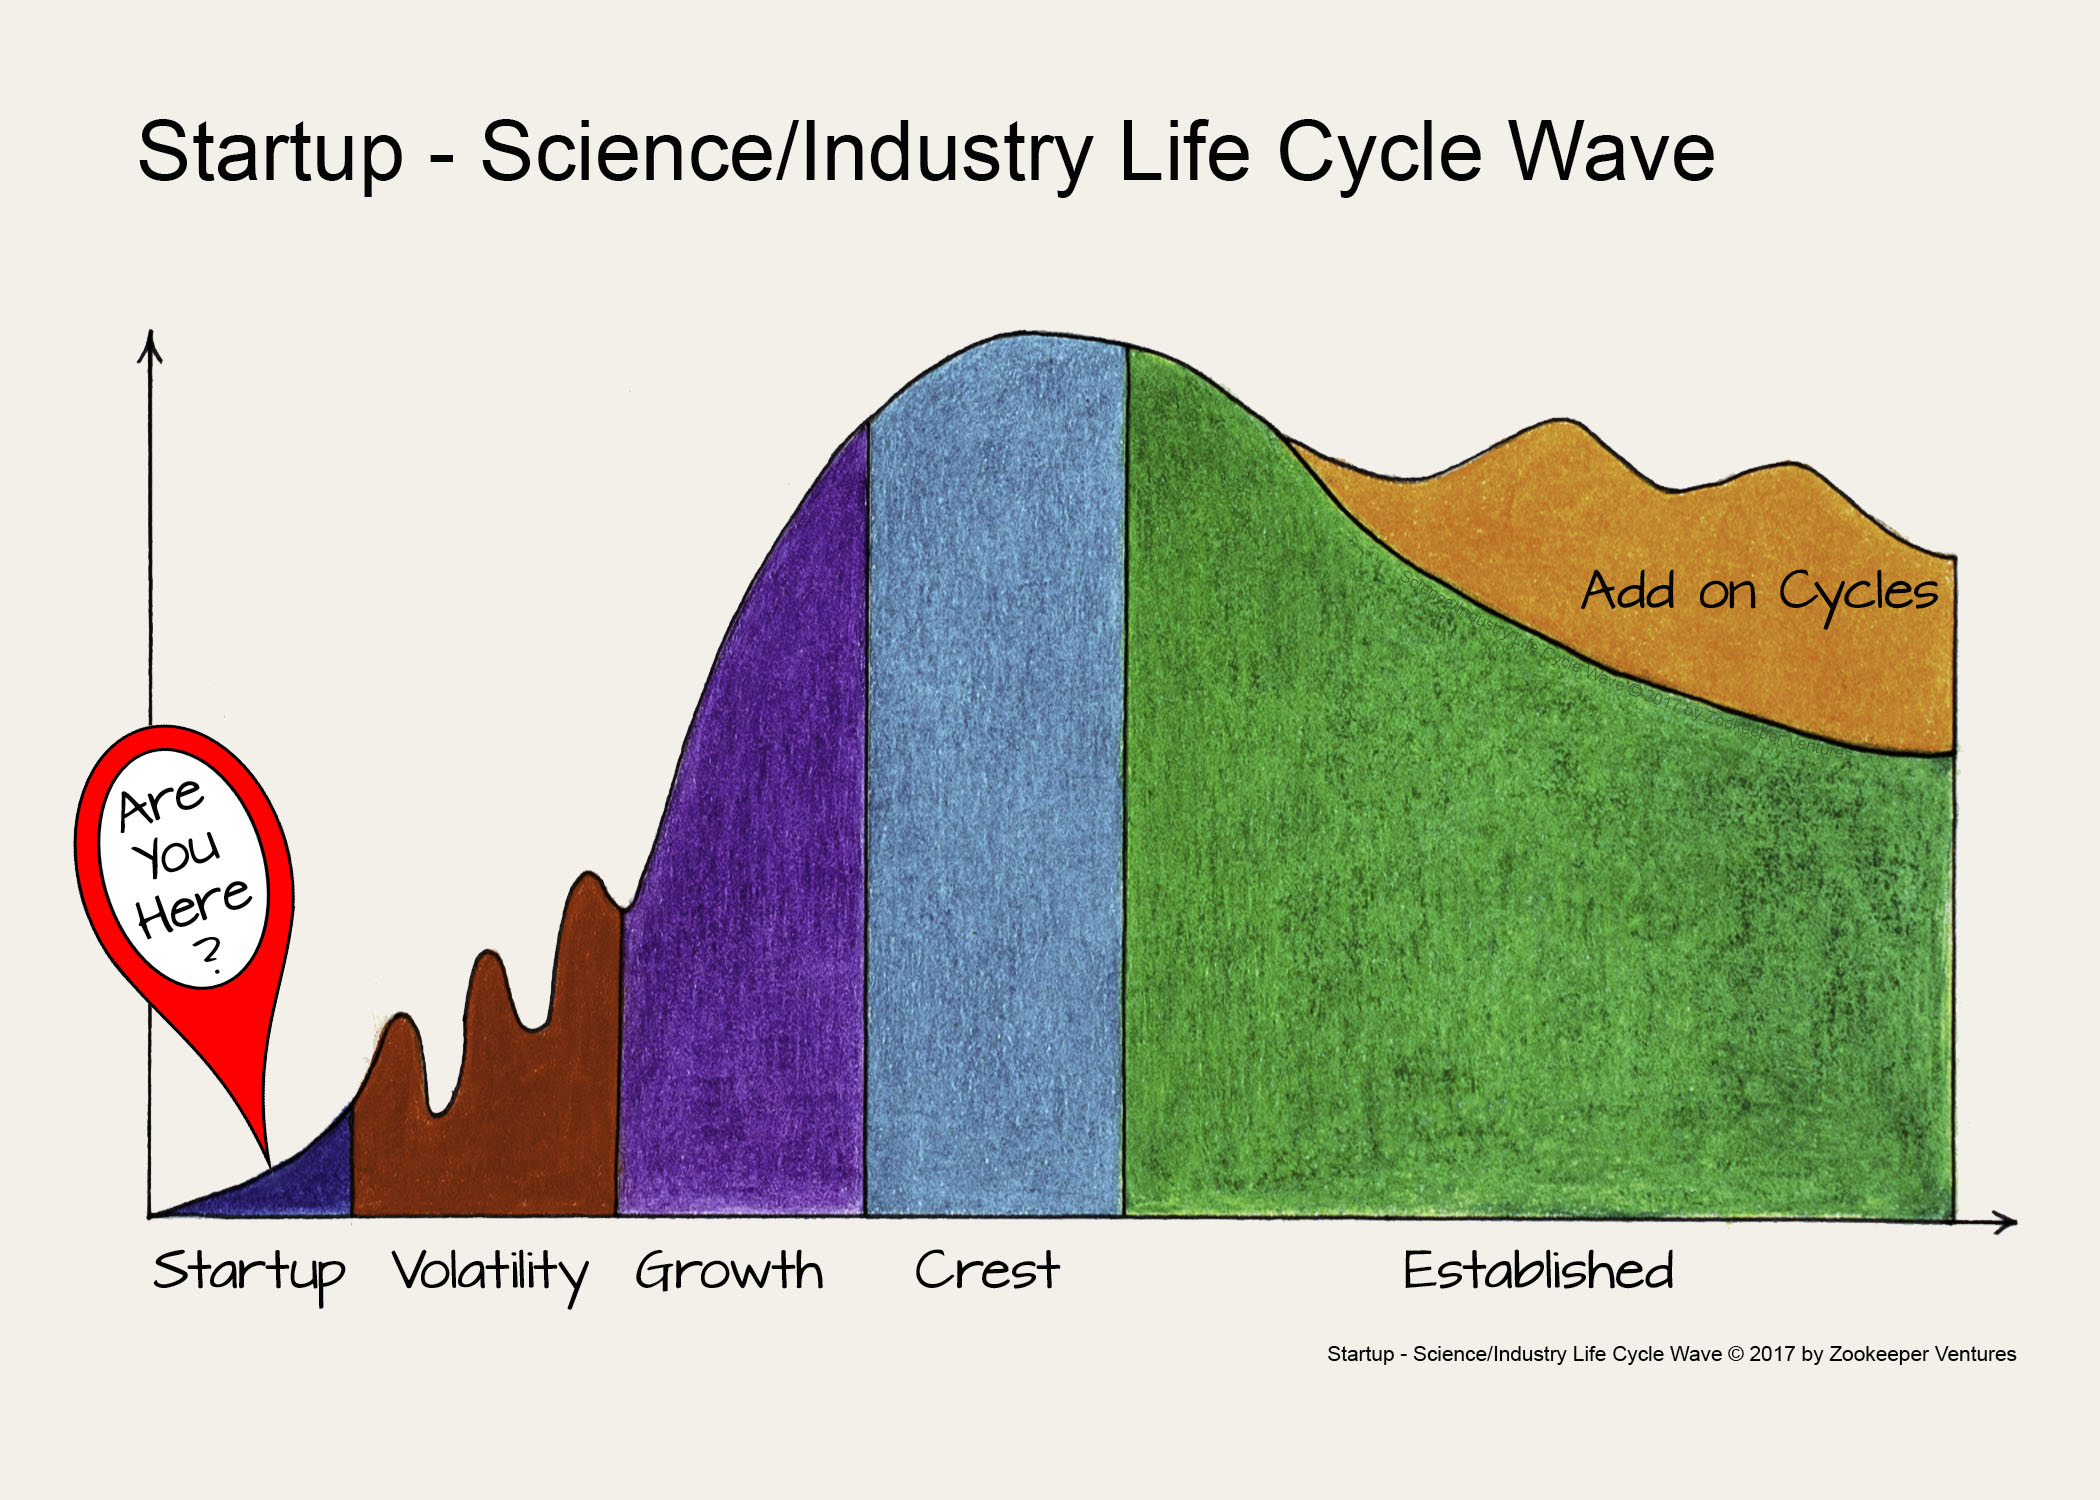 Startup - Science Industry Life Cycle Wave